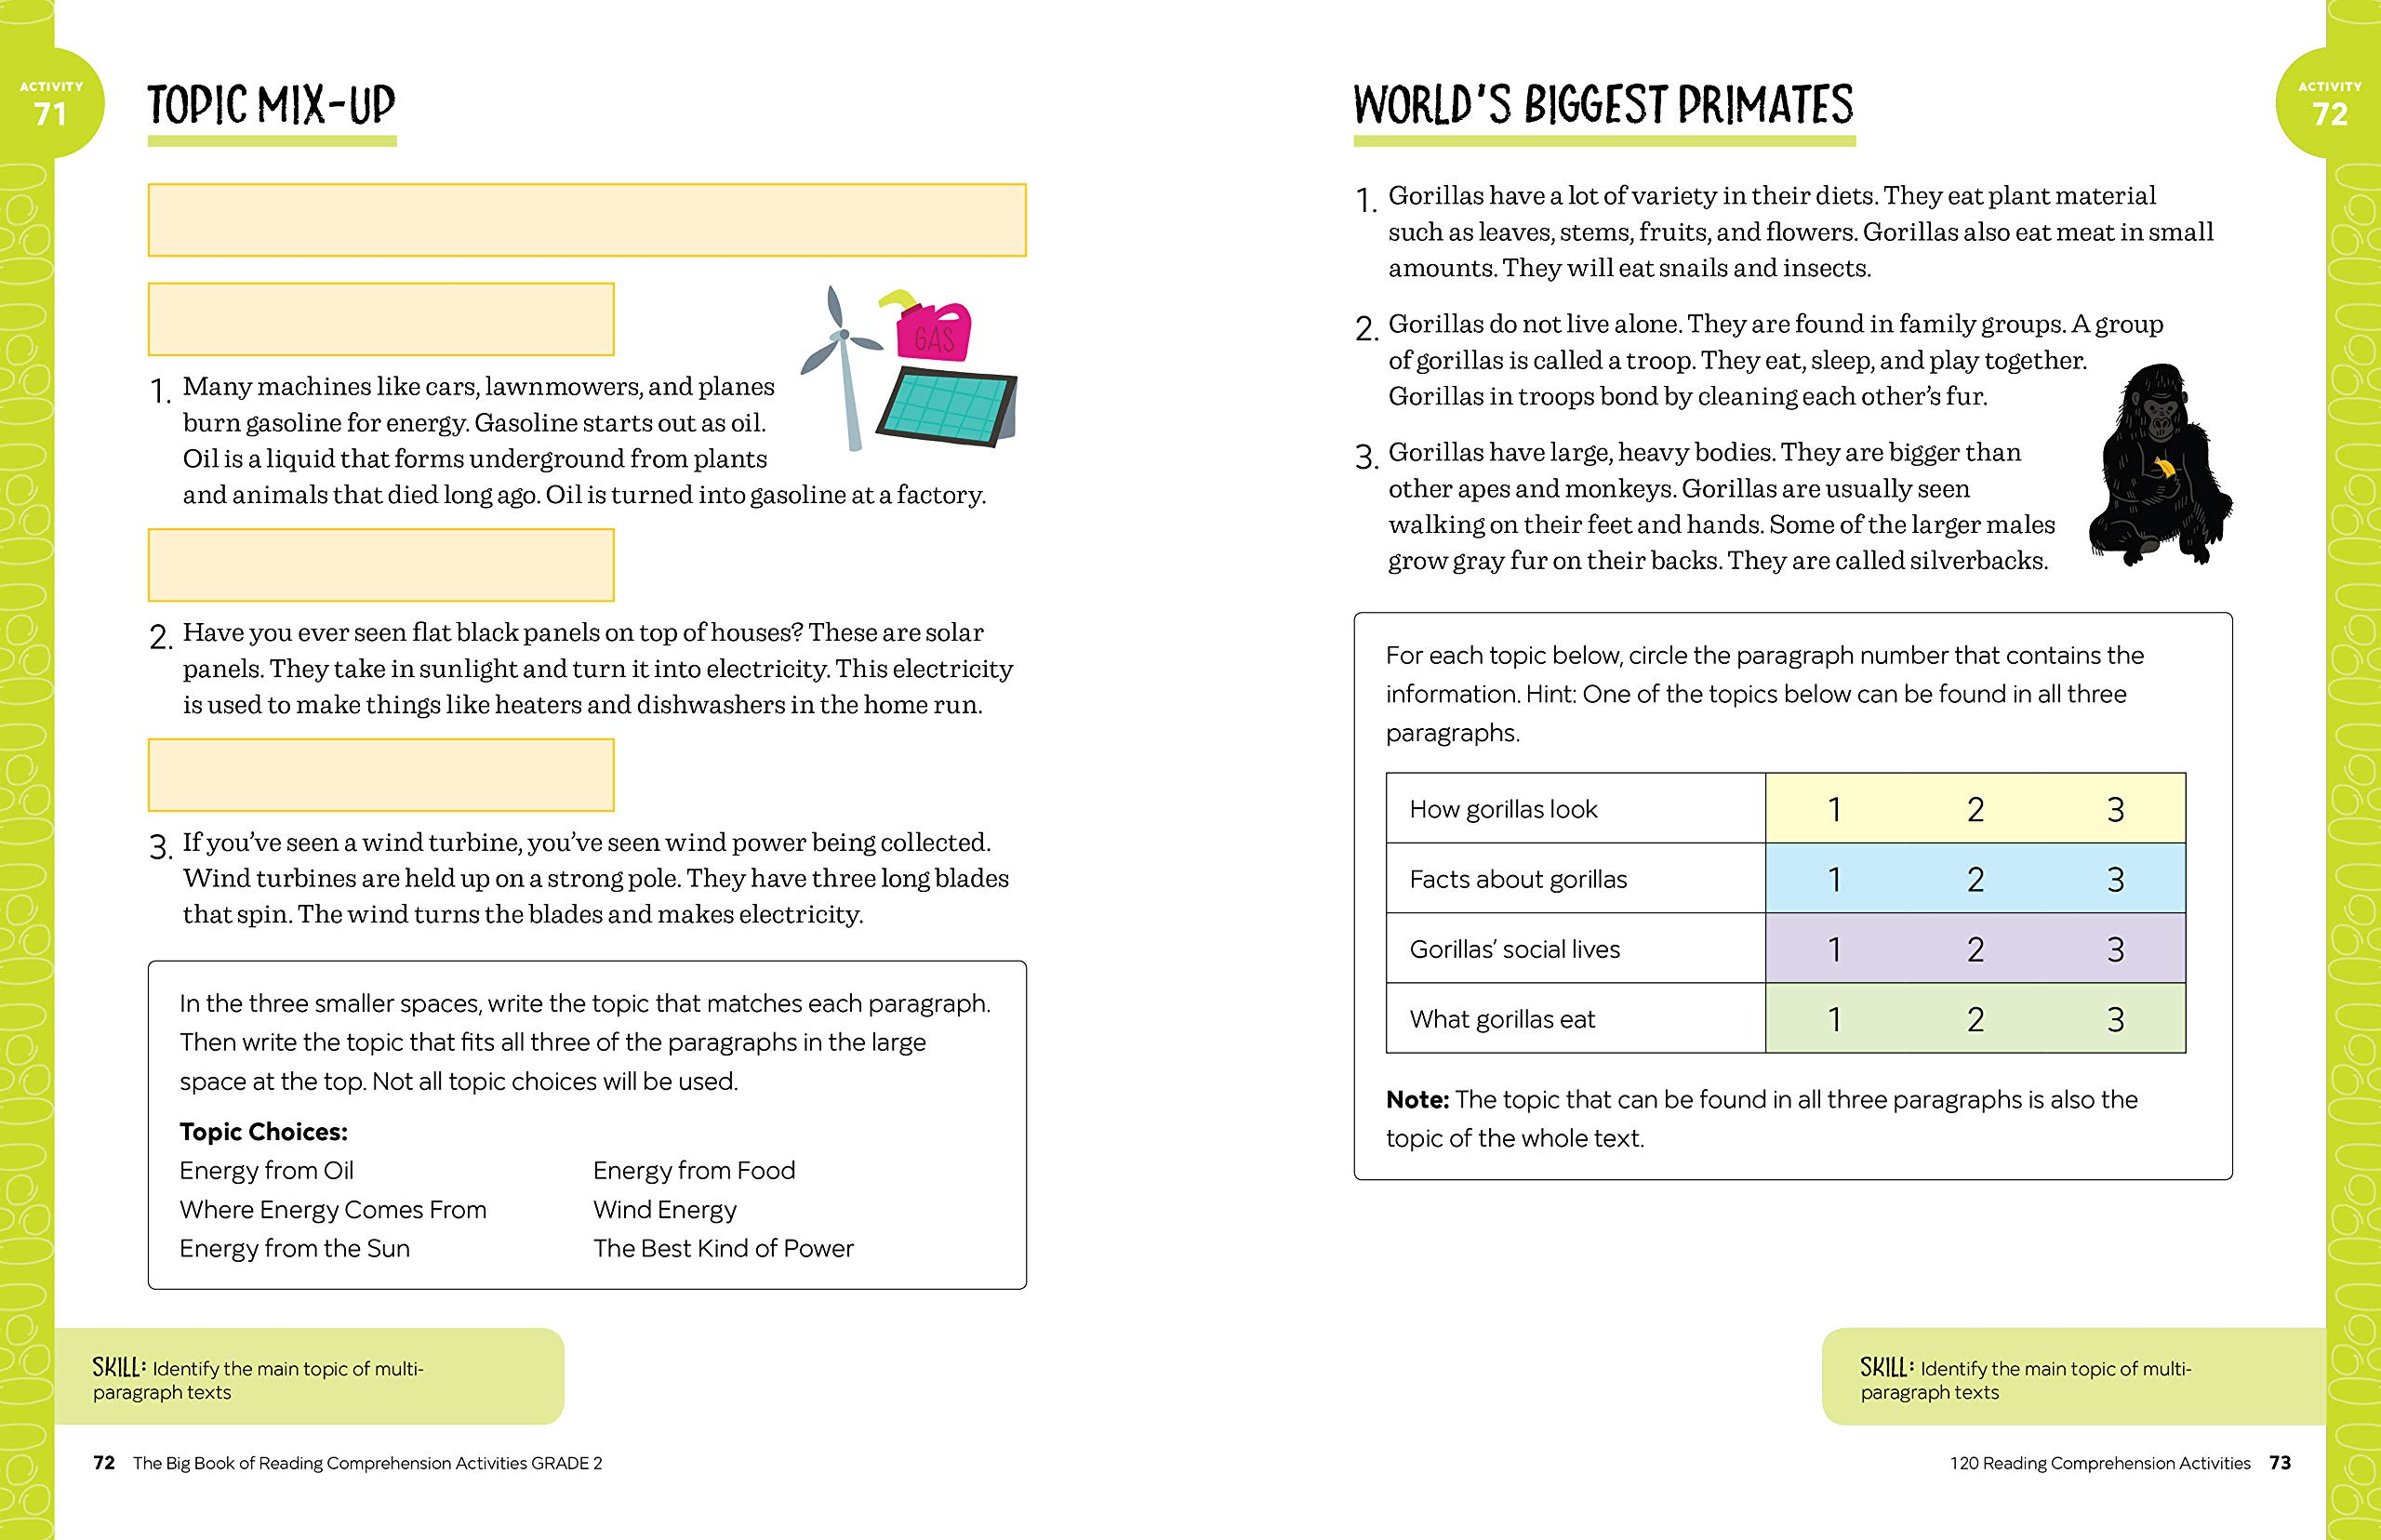 The Big Book of Reading Comprehension Activities, Grade 2: 120 ...